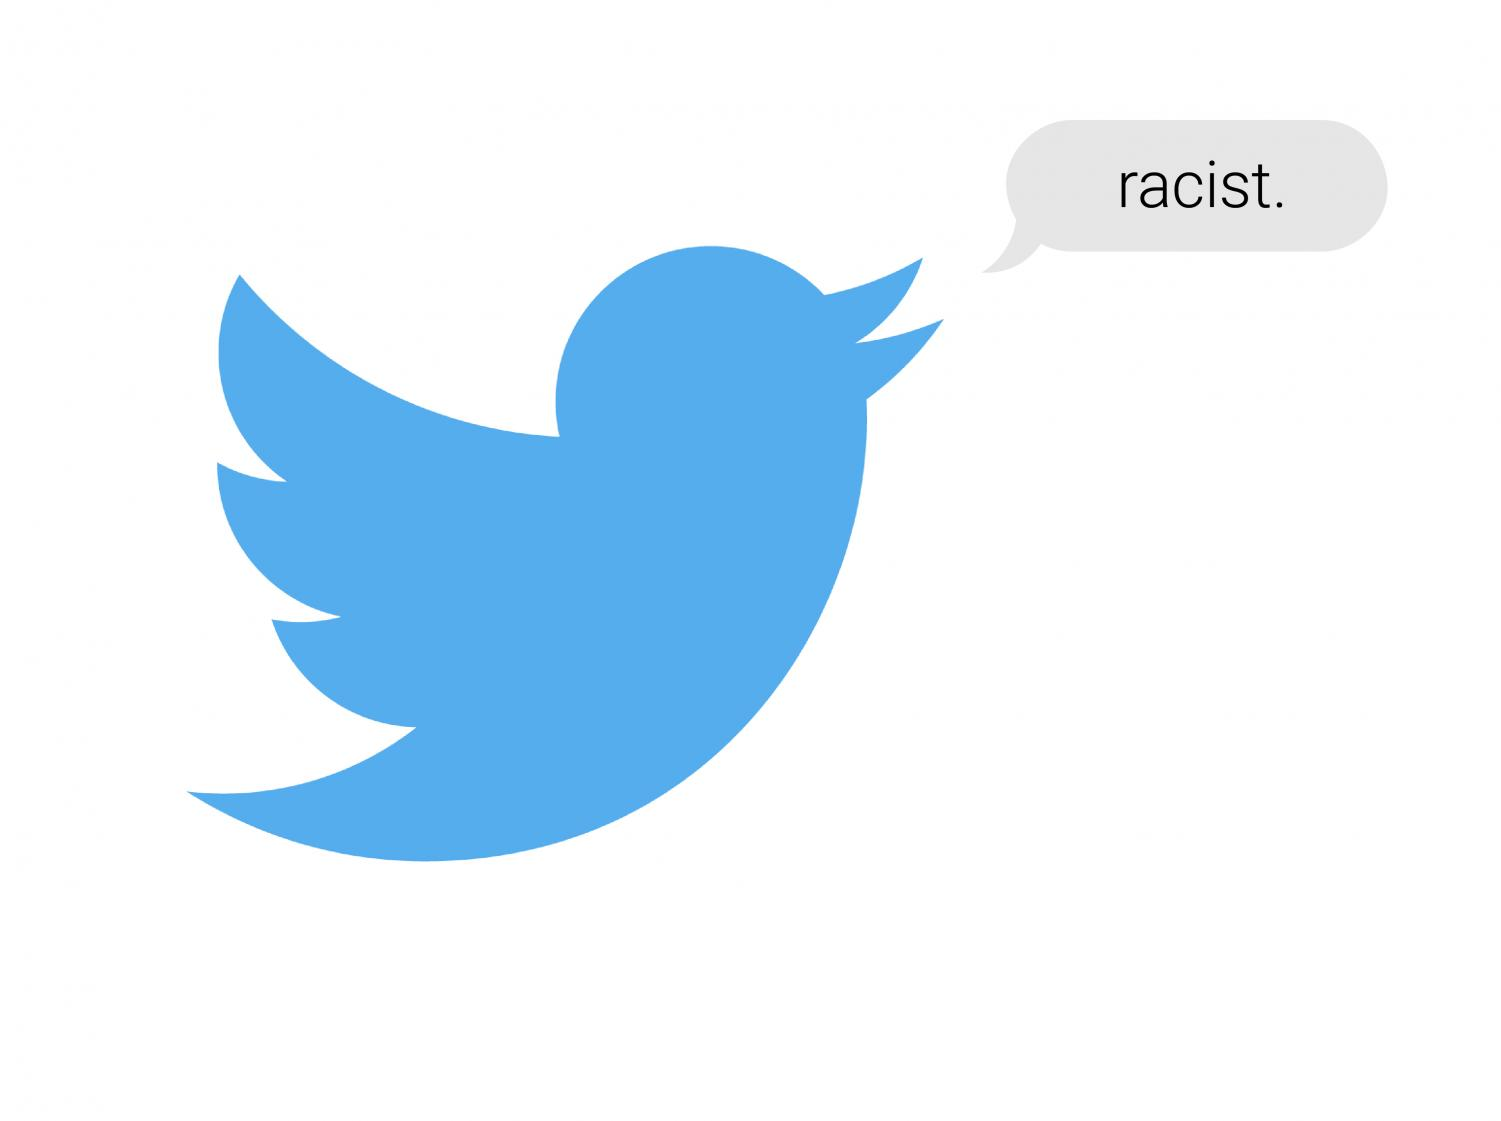 The anononymous Twitter account spoke of racism, discrimination and high turnover of teachers of color at SPA.